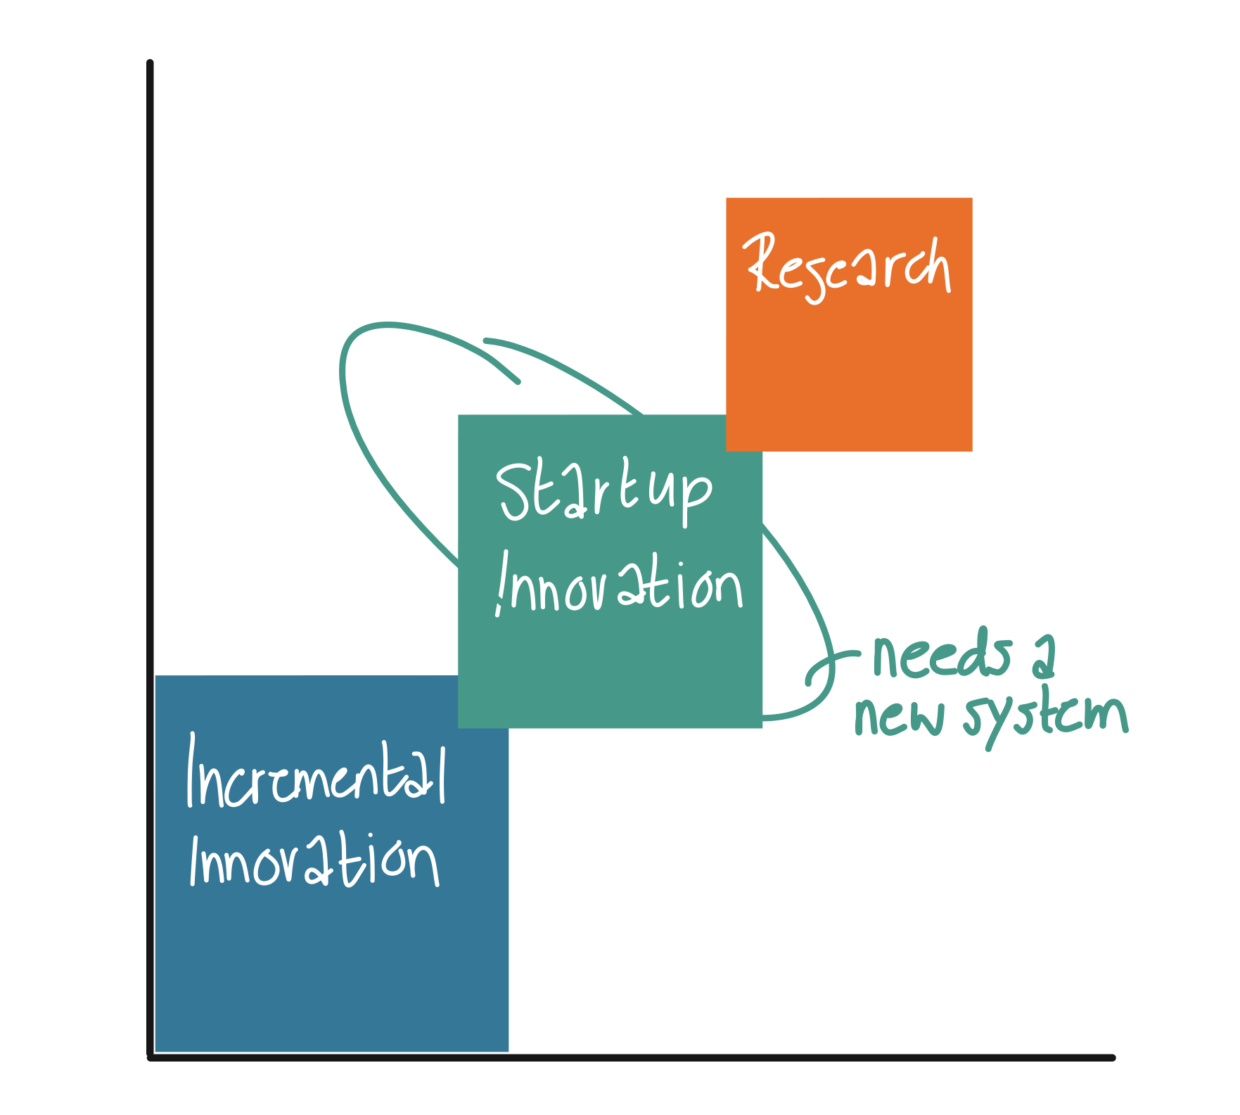 Incremental innovation versus Disruptive innovation. Since the business goals are different, we need a different way of managing as well.